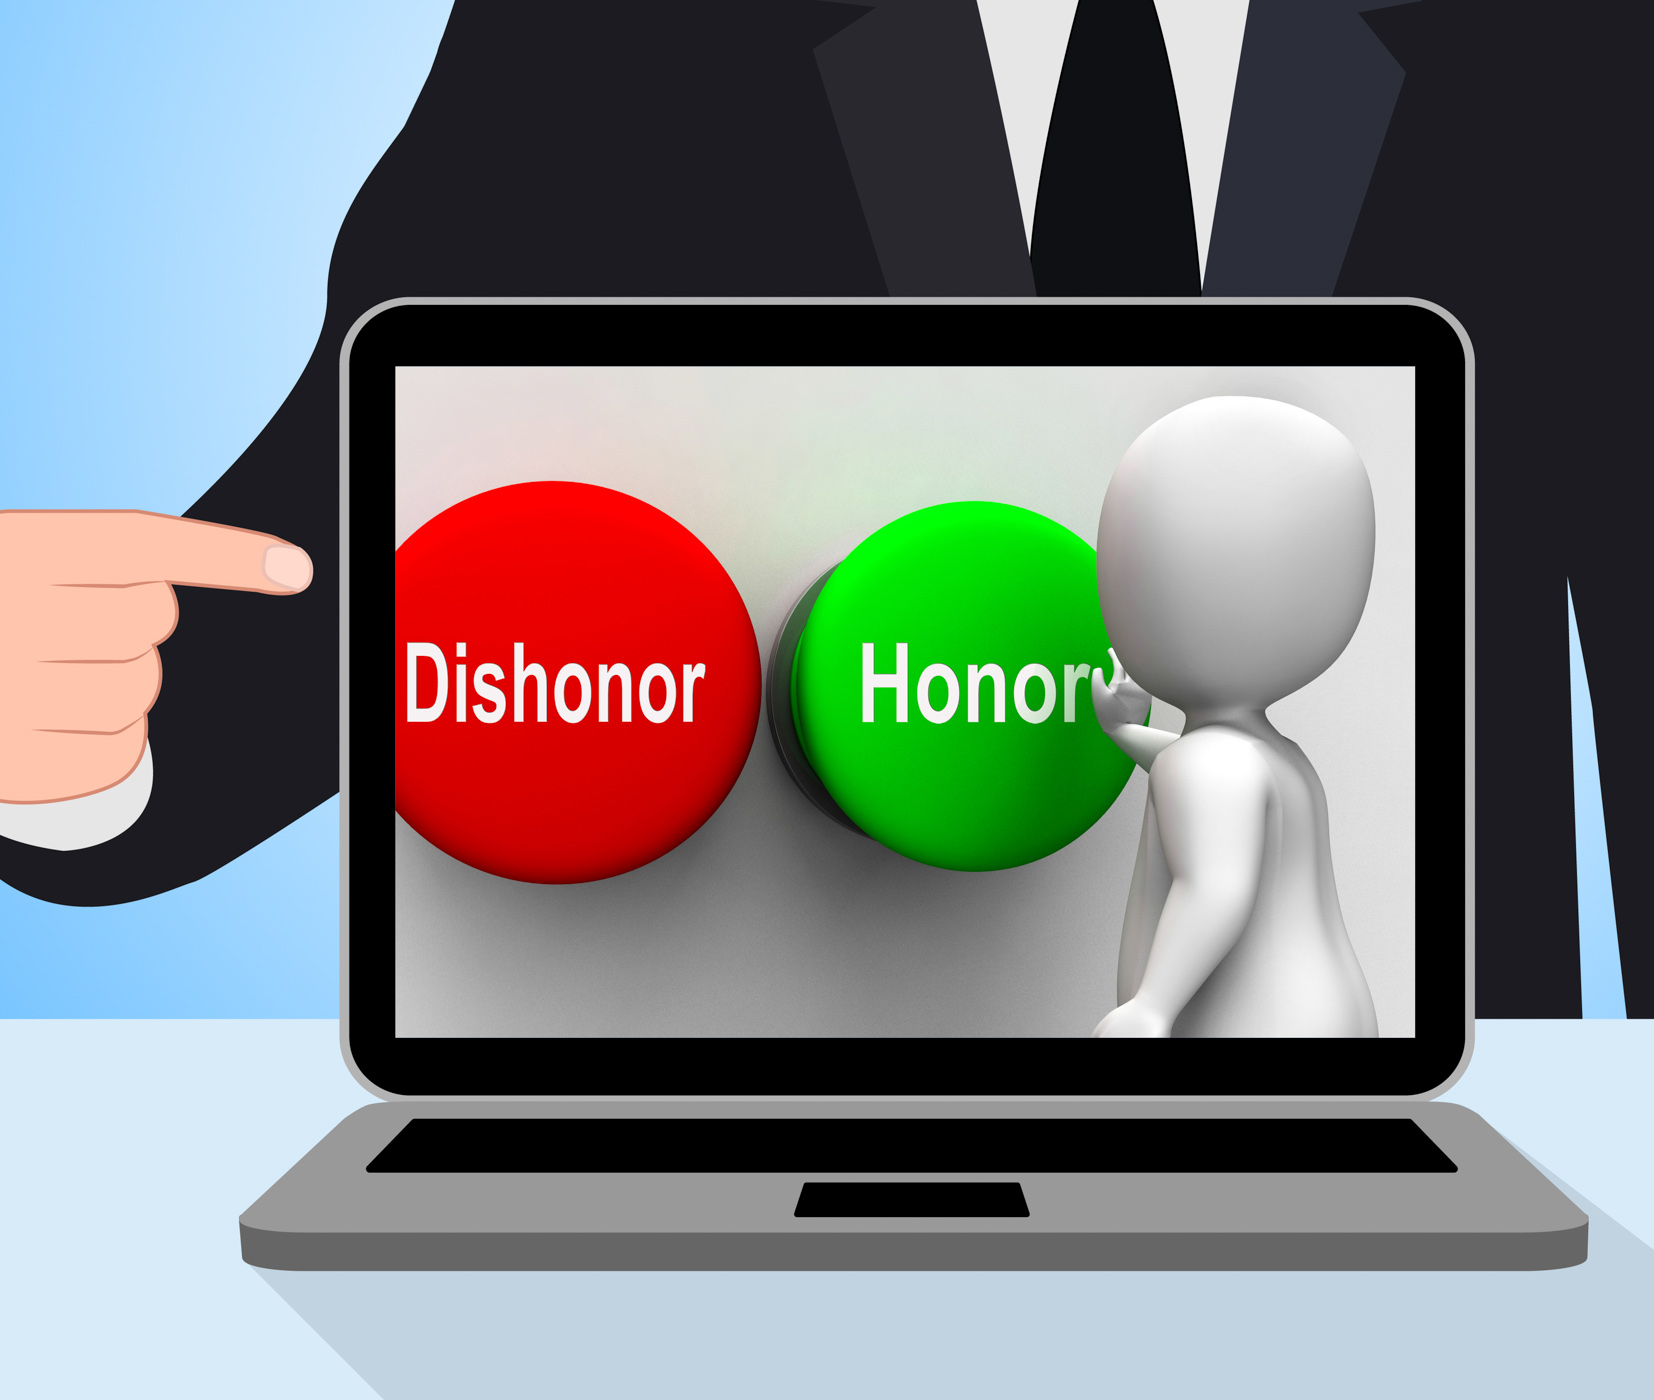 Dishonor honor buttons displays integrity and morals photo